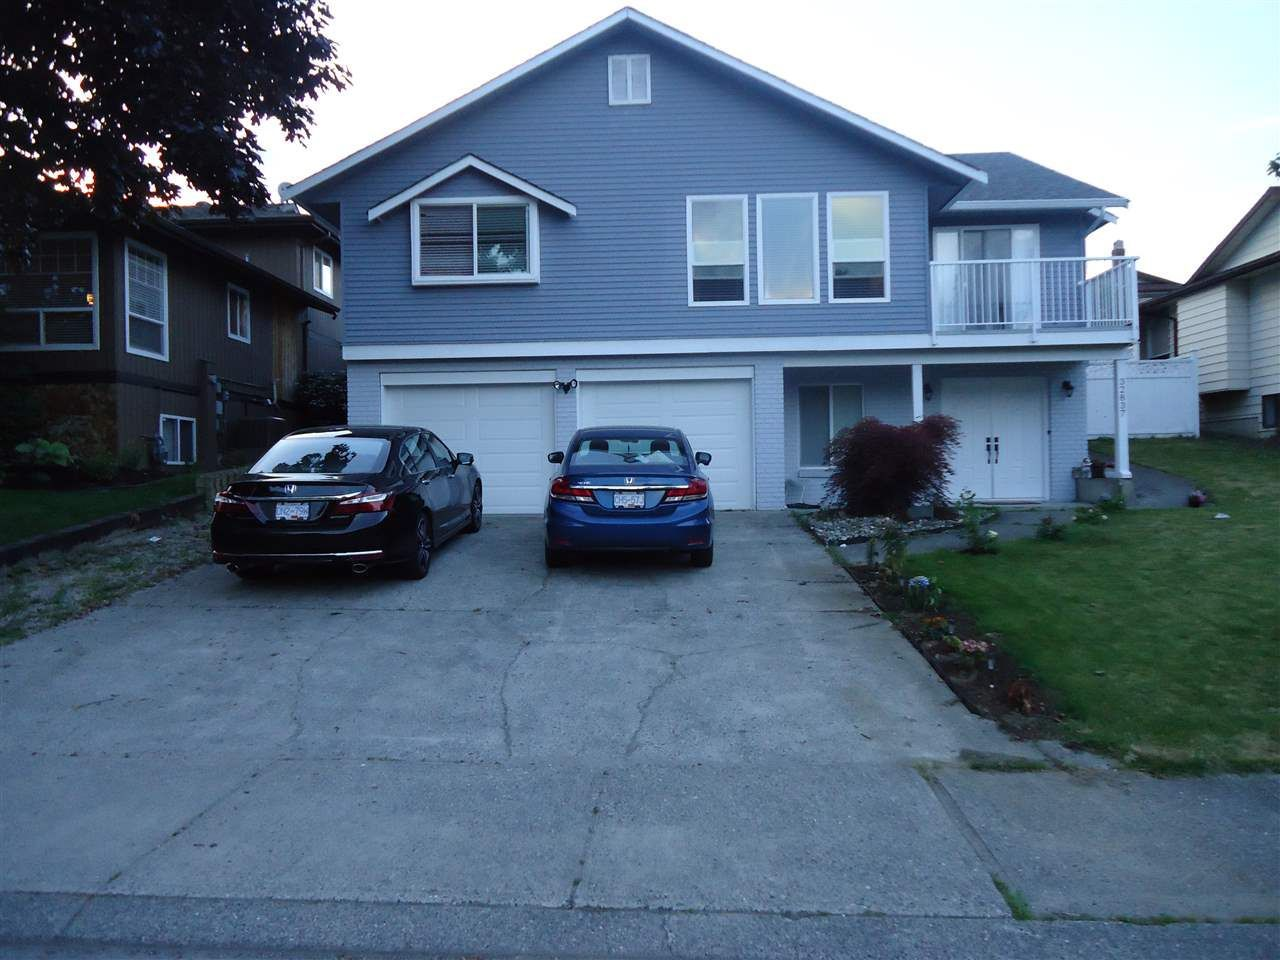 Main Photo: 32837 HARWOOD Crescent in Abbotsford: Central Abbotsford House for sale : MLS®# R2211745